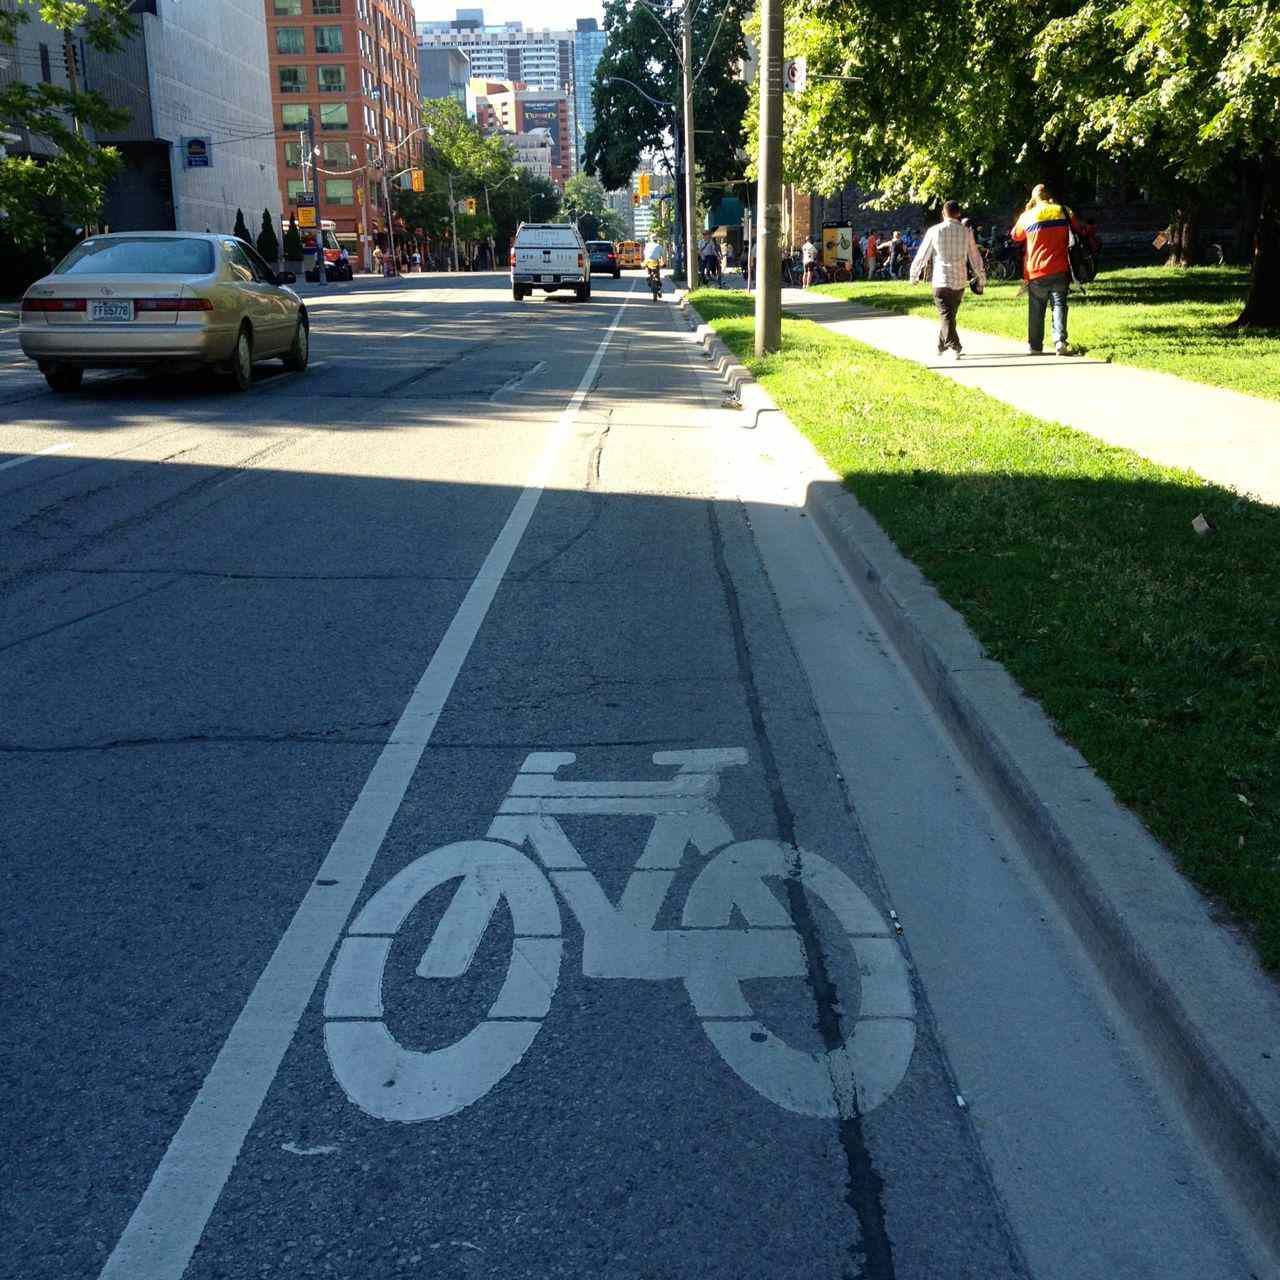 Jarvis bike lane, removed because there was no need and it slowed down cars by two minutes.